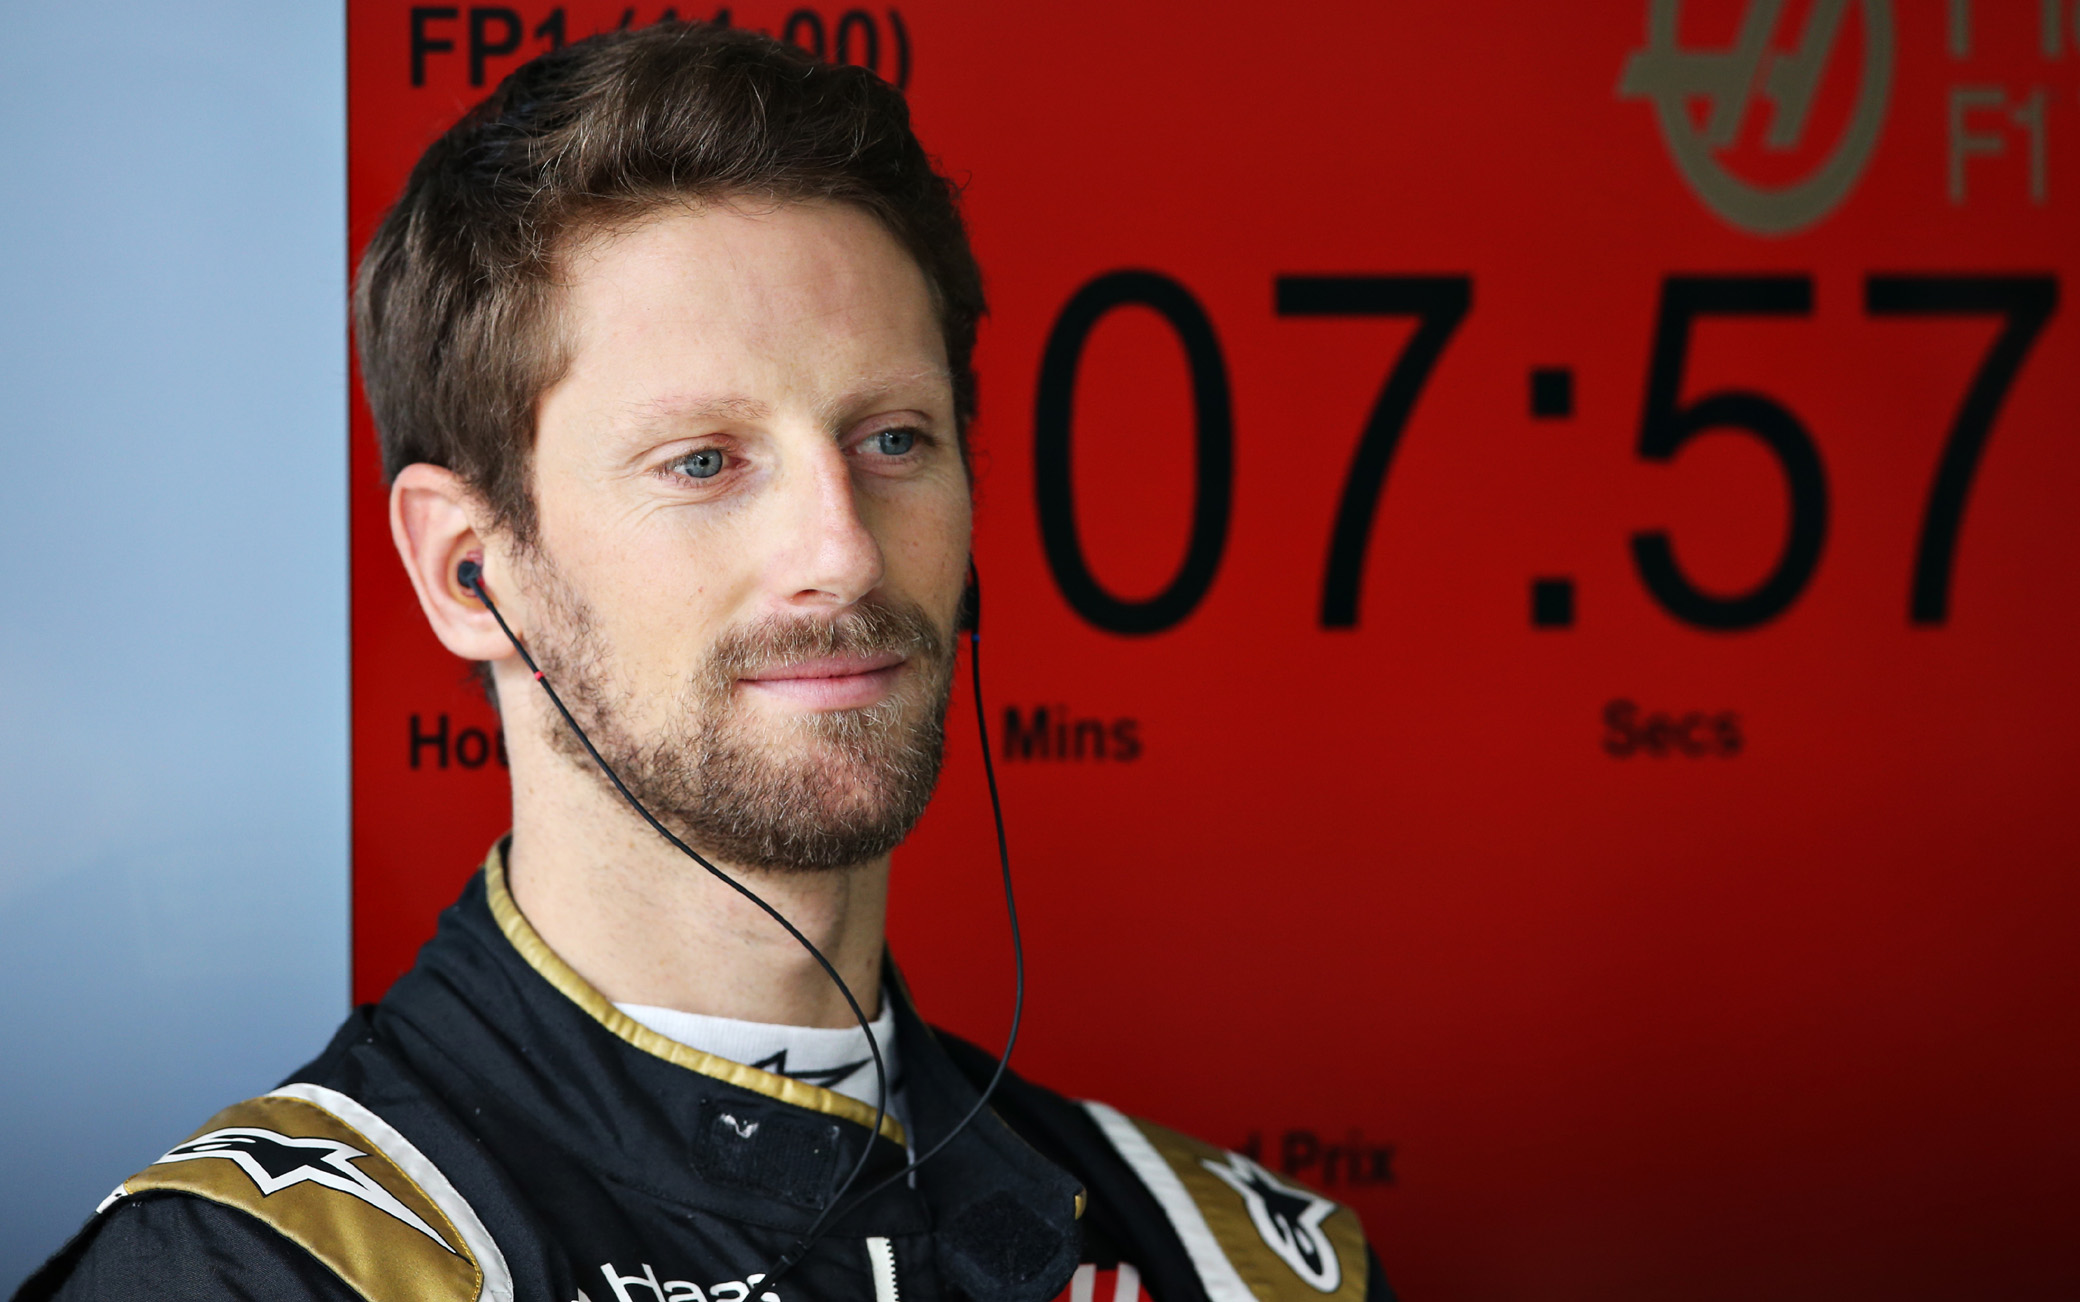 SAO PAULO, BRAZIL - NOVEMBER 15: Romain Grosjean of France and Haas F1 looks on in the garage during practice for the F1 Grand Prix of Brazil at Autodromo Jose Carlos Pace on November 15, 2019 in Sao Paulo, Brazil. (Photo by Charles Coates/Getty Images)